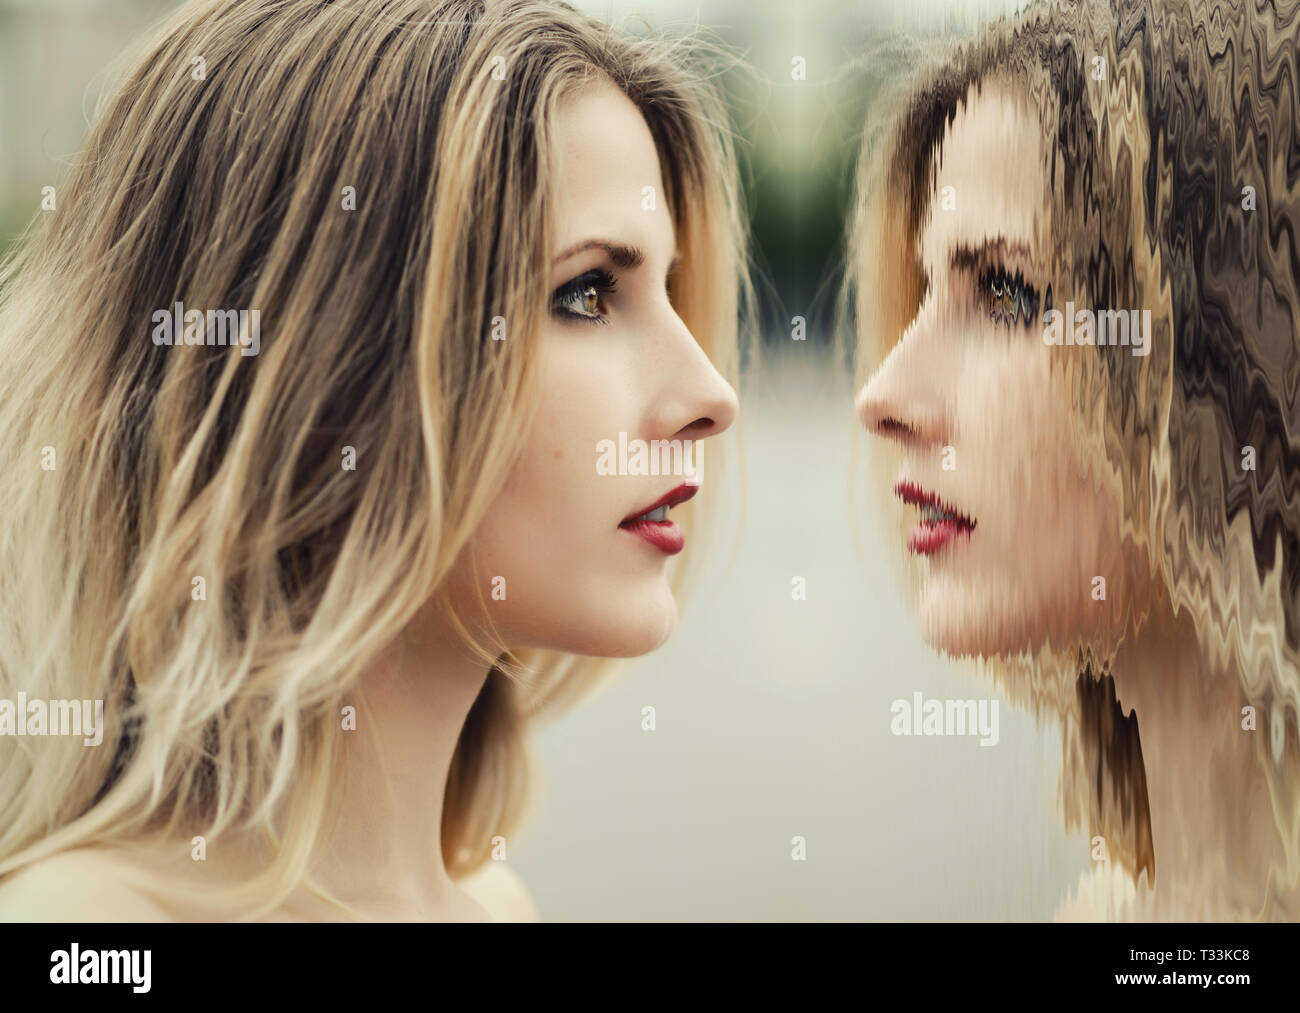 Young woman looks at her reflection in mystical mirror. - Stock Image